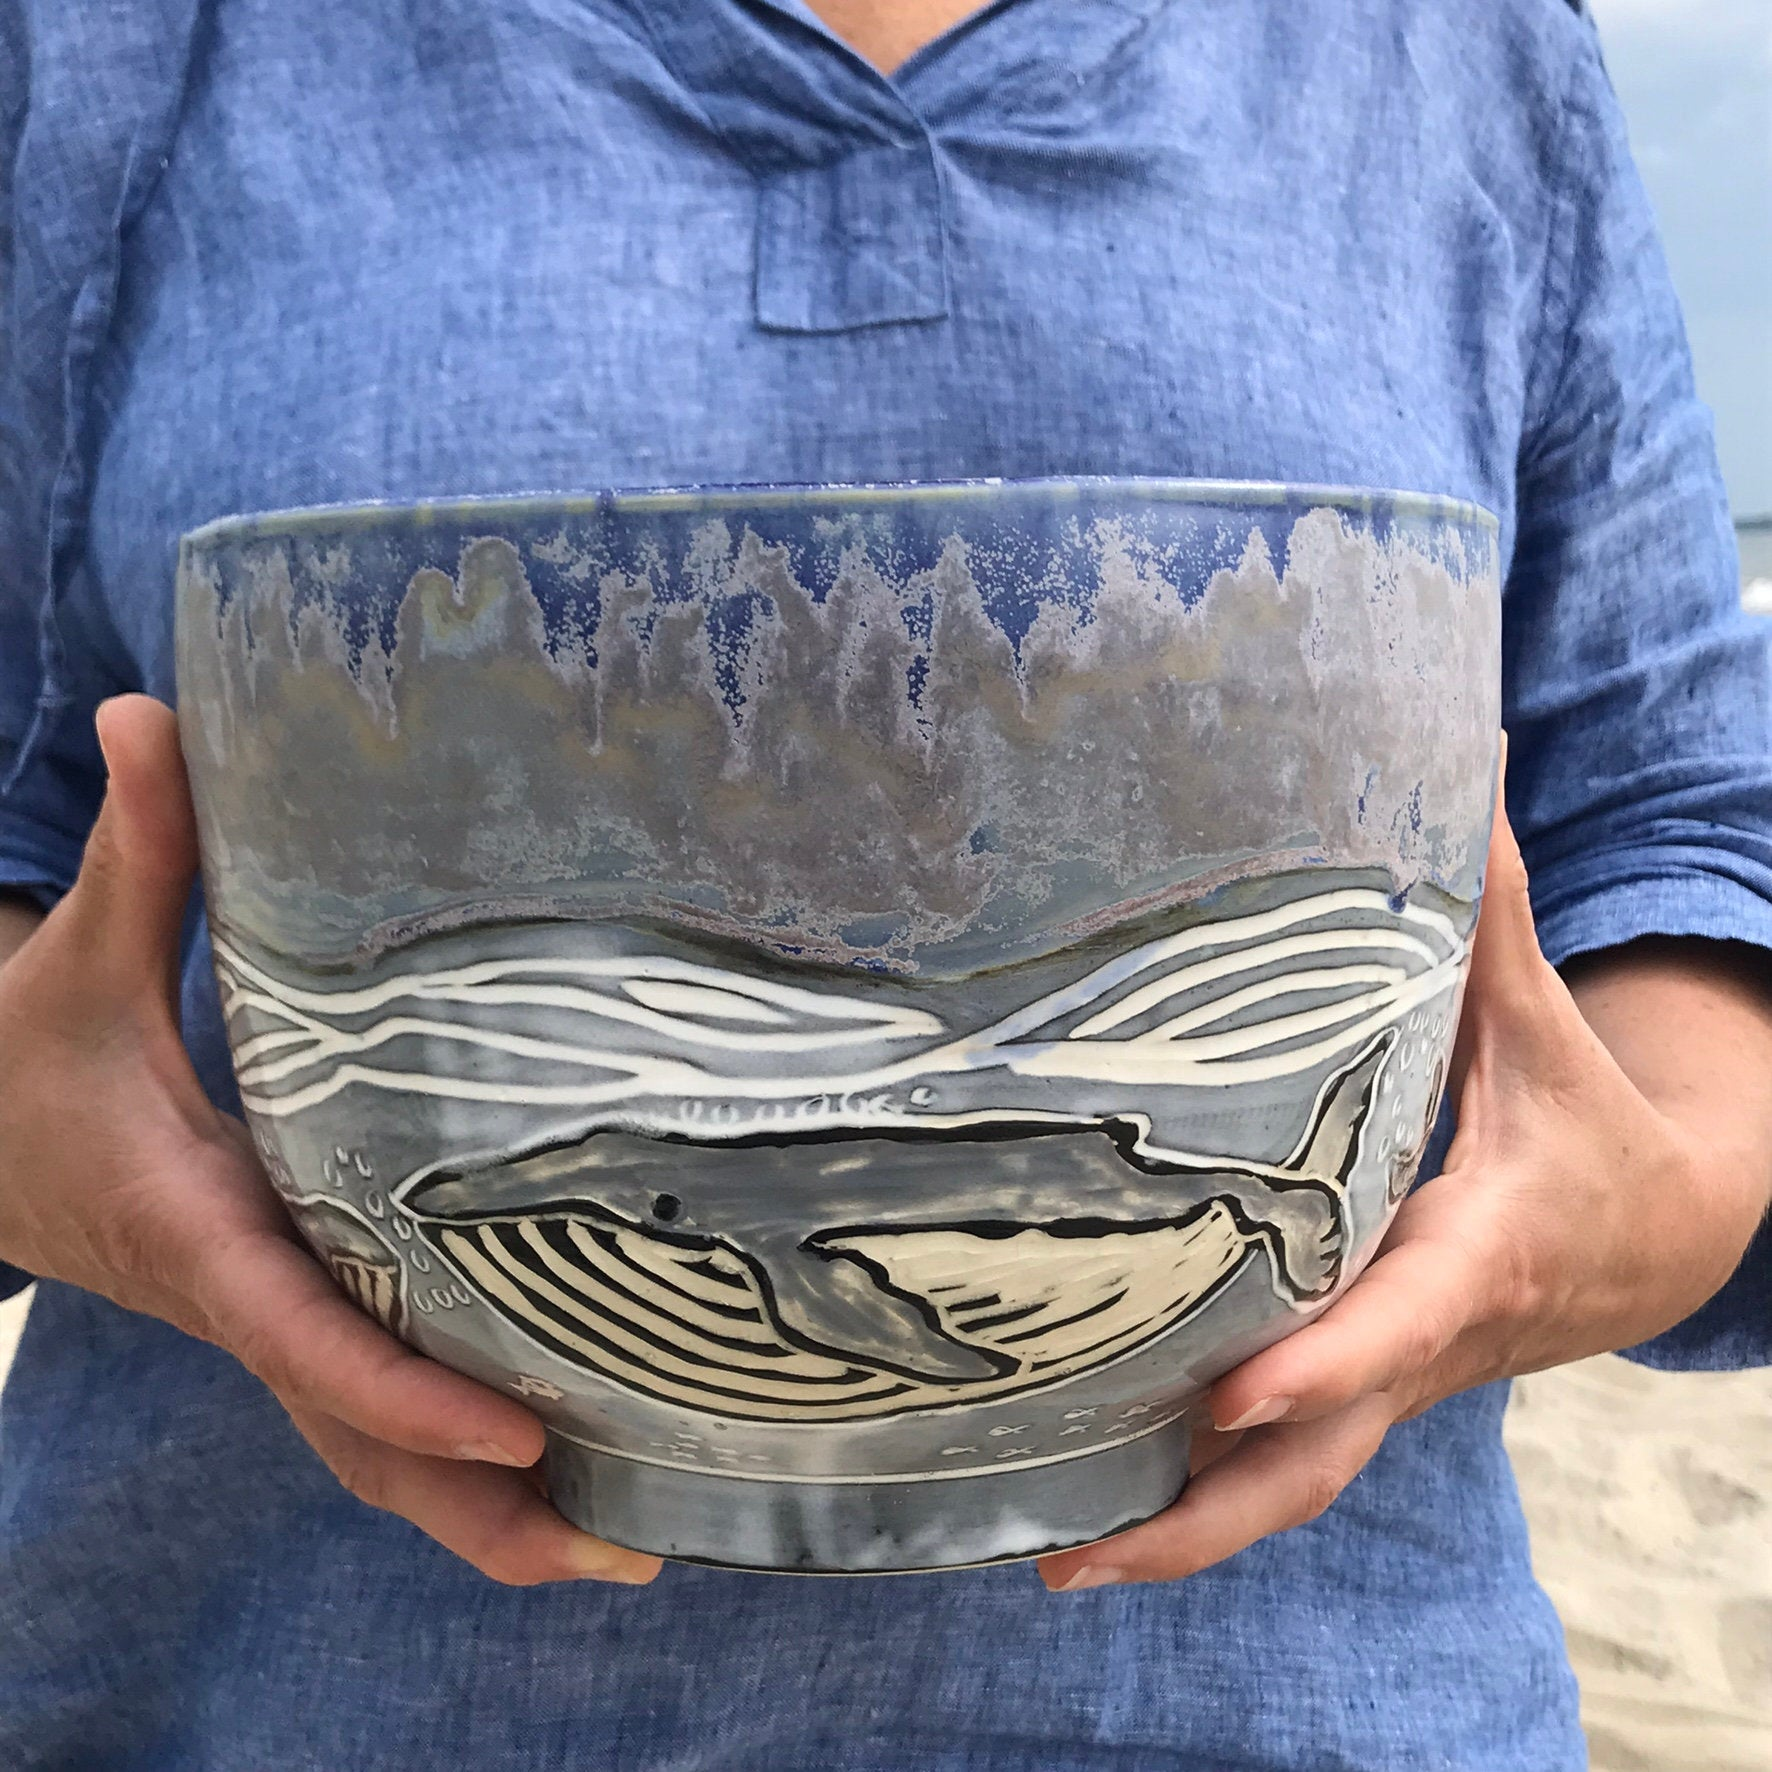 Handmade Sgraffito Ceramic Whale Serving Bowl in Blue